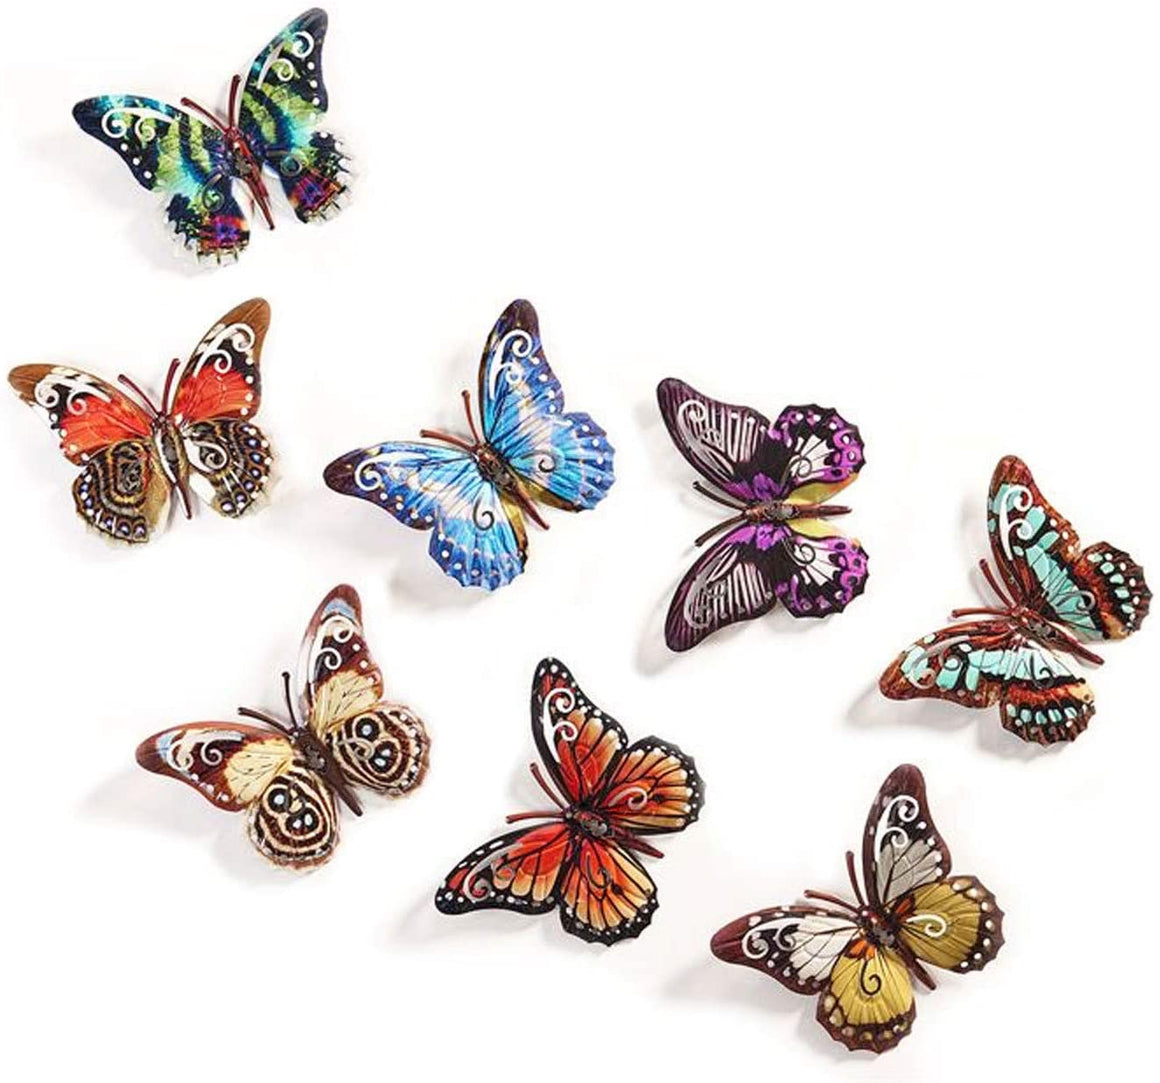 Set of 8 Metal Butterflies Hanging Wall Art, 6.5 Inches, 8 Designs in Colorful Enamel